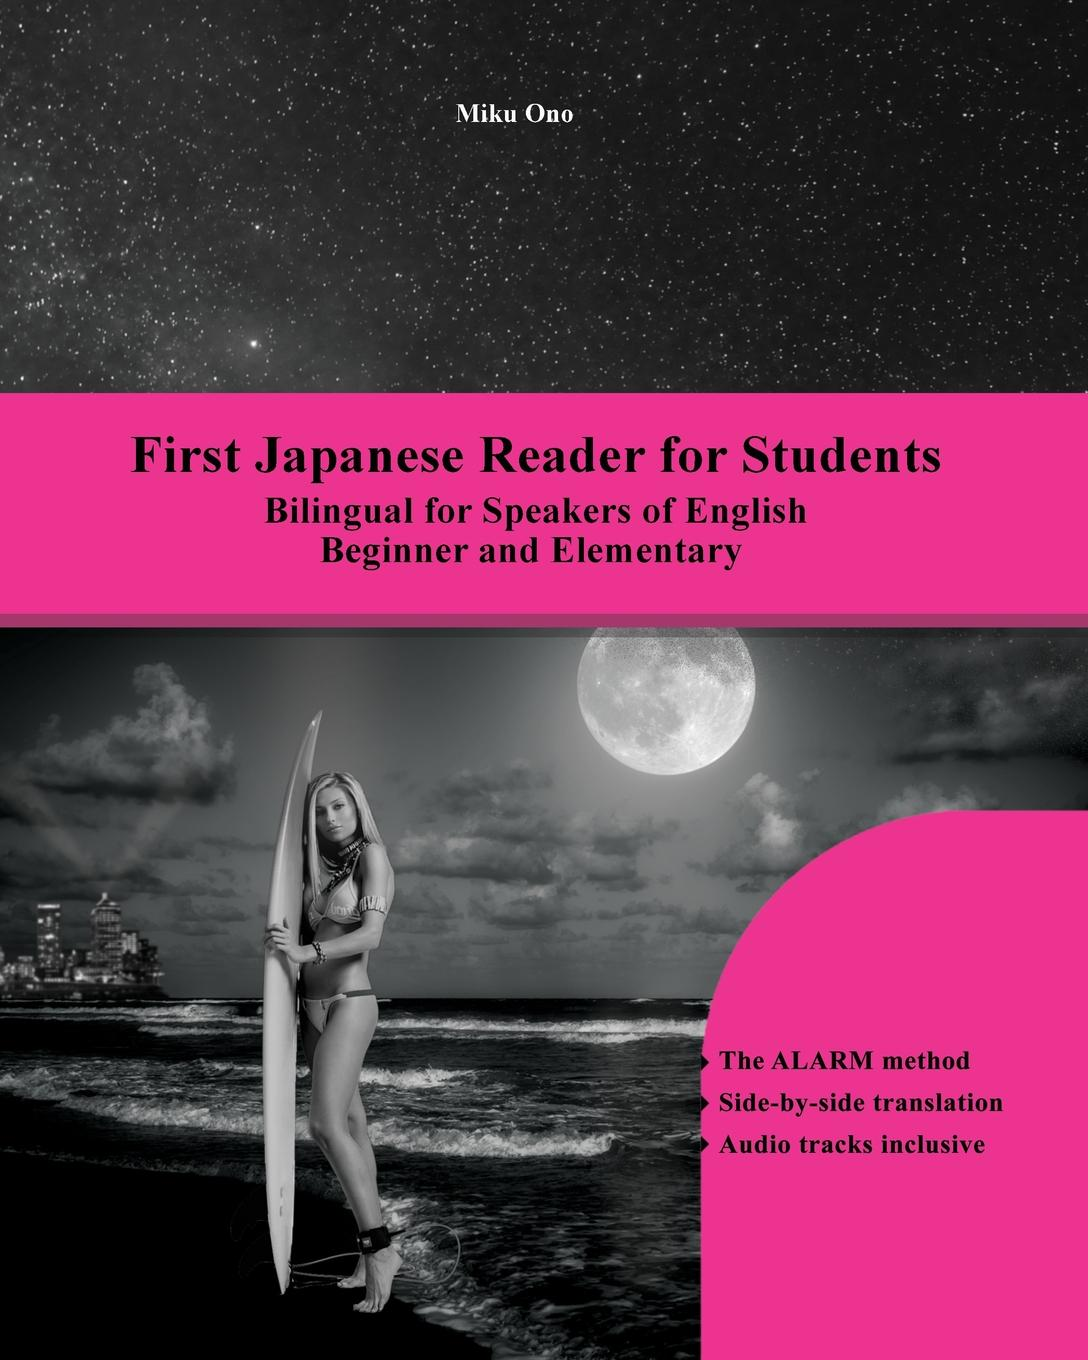 Miku Ono First Japanese Reader for Students. Bilingual for Speakers of English Beginner and Elementary sachiko toyozato japanese for beginners learning conversational japanese second edition includes audio disc